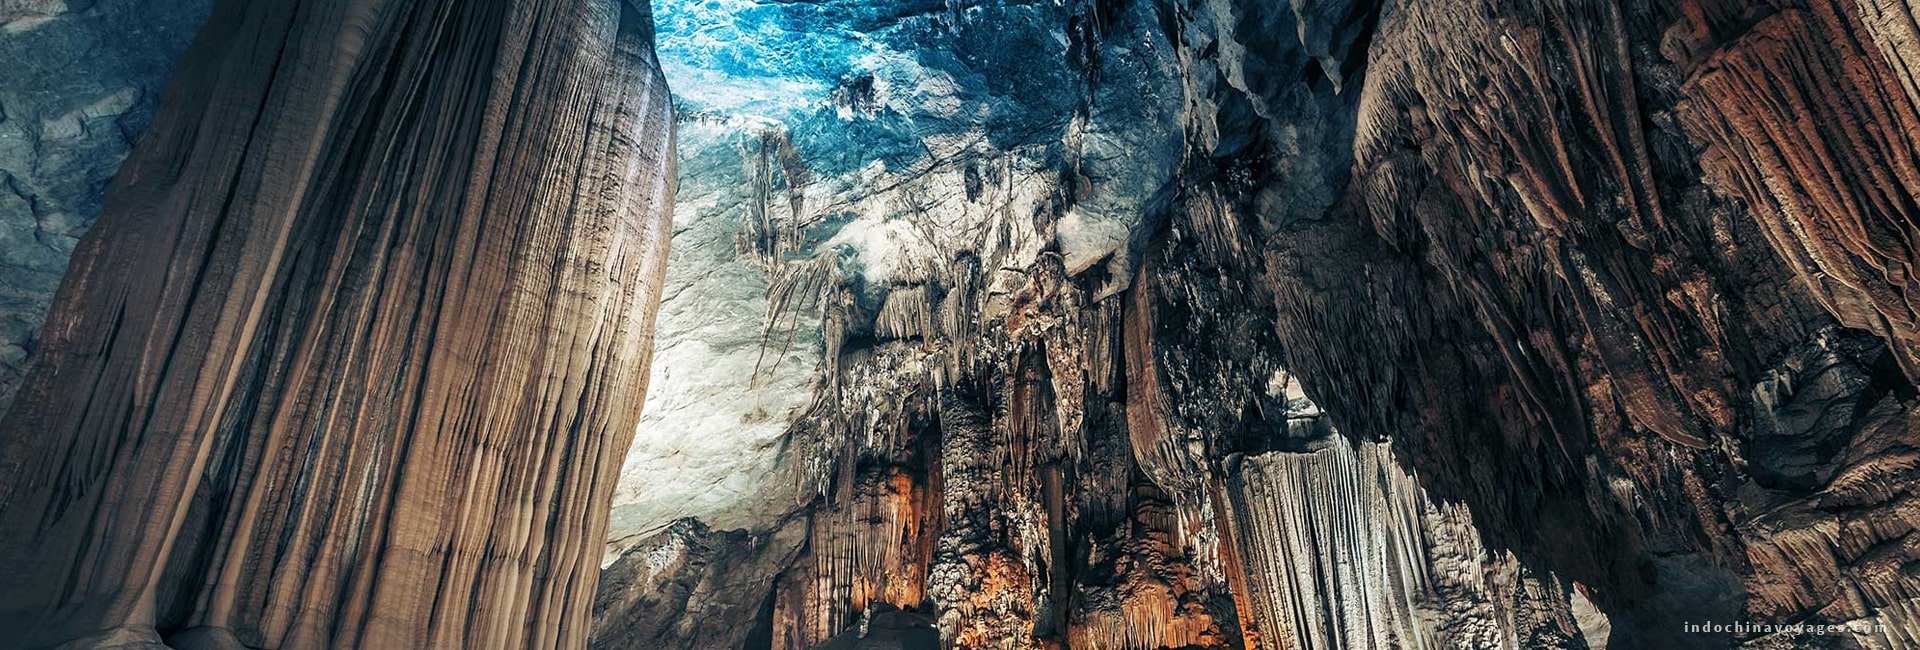 Quang Binh is the land of two gigantic caves that are World Heritage Sites